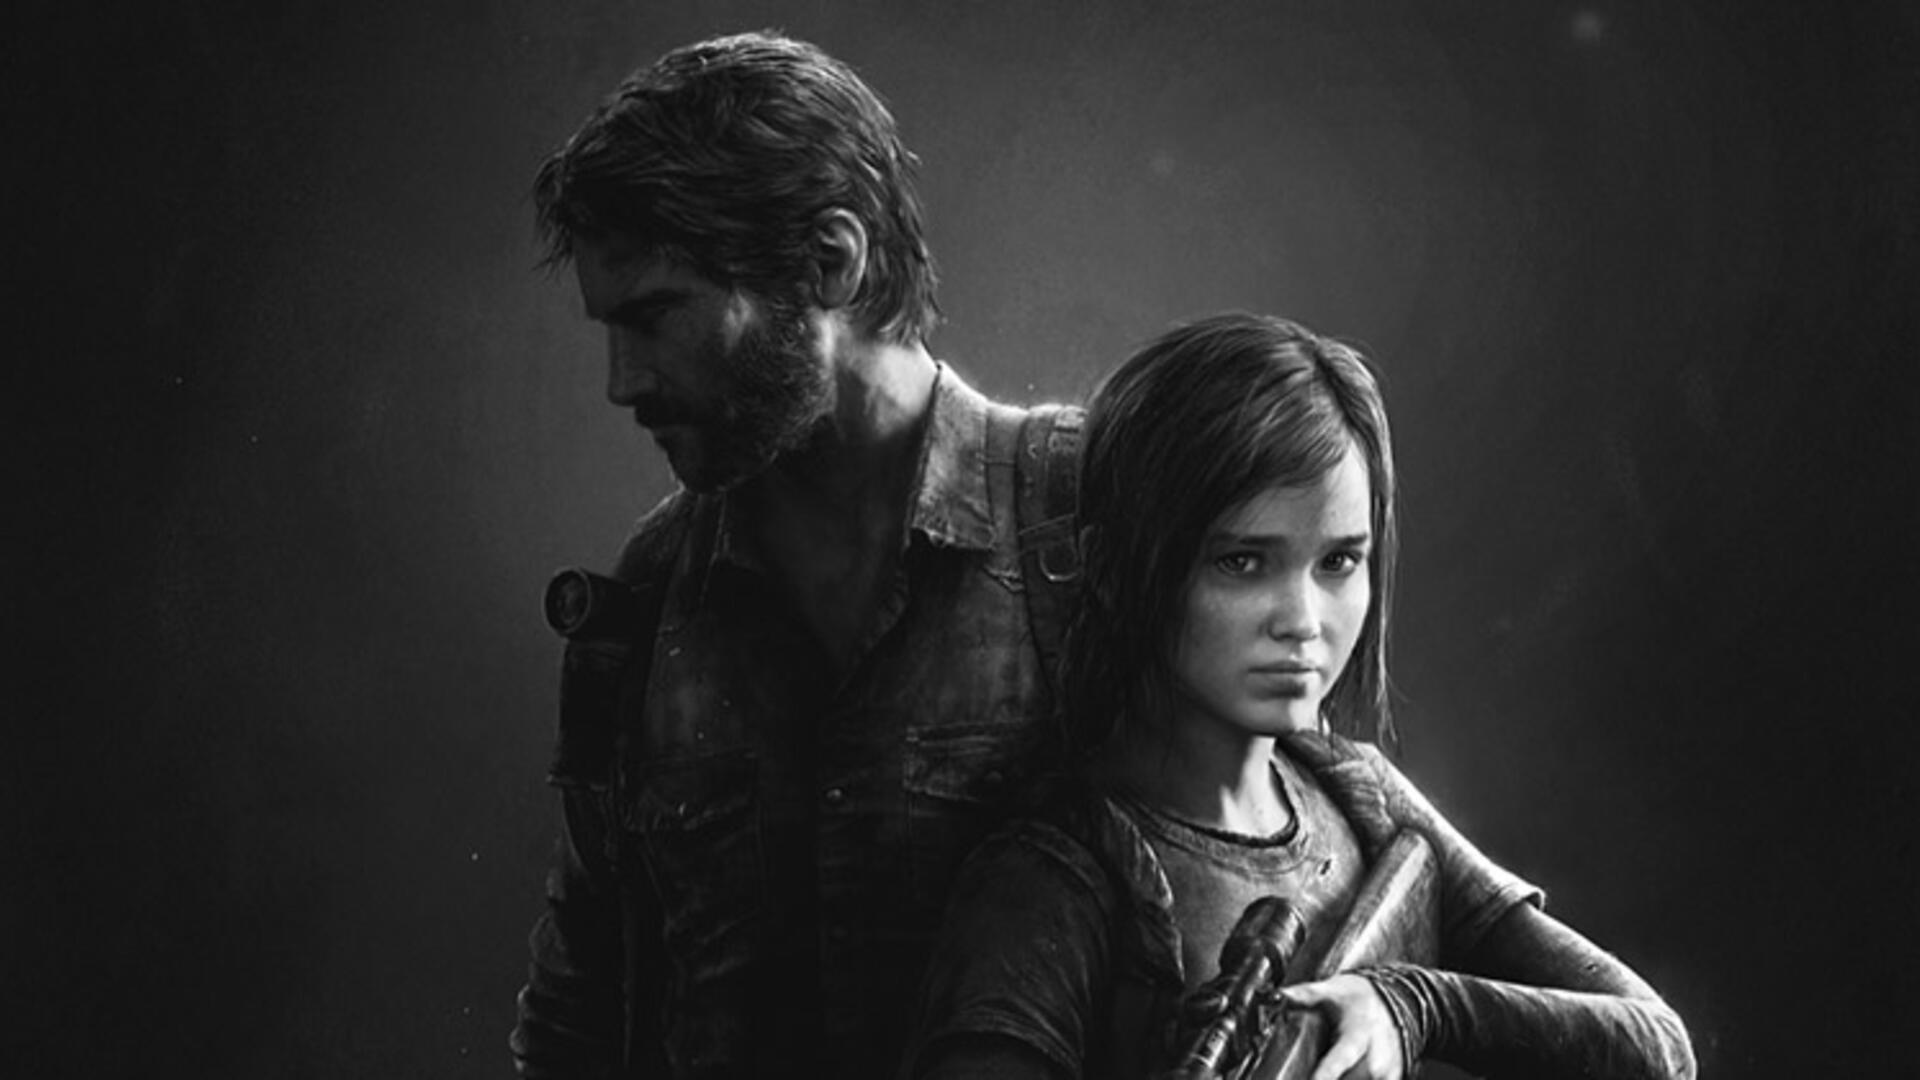 The Last of Us Remastered PlayStation 4 Review: Surrogates and Shotguns